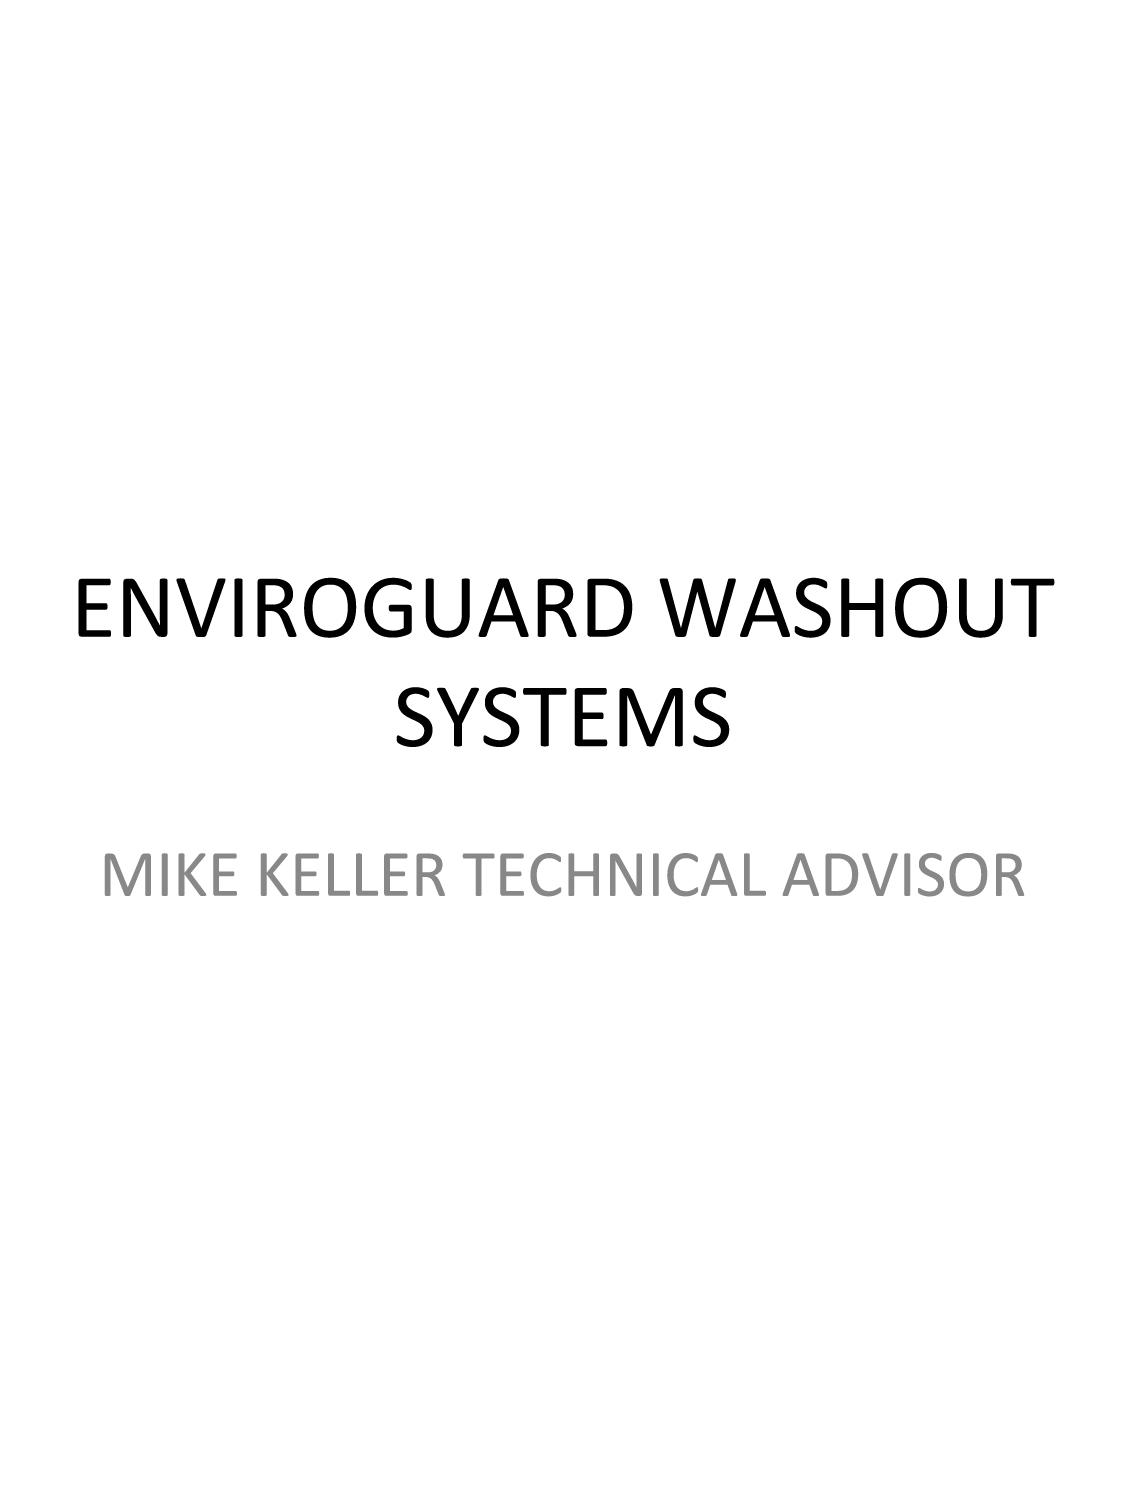 enviroguard-updated-pump-install-cover-01.png